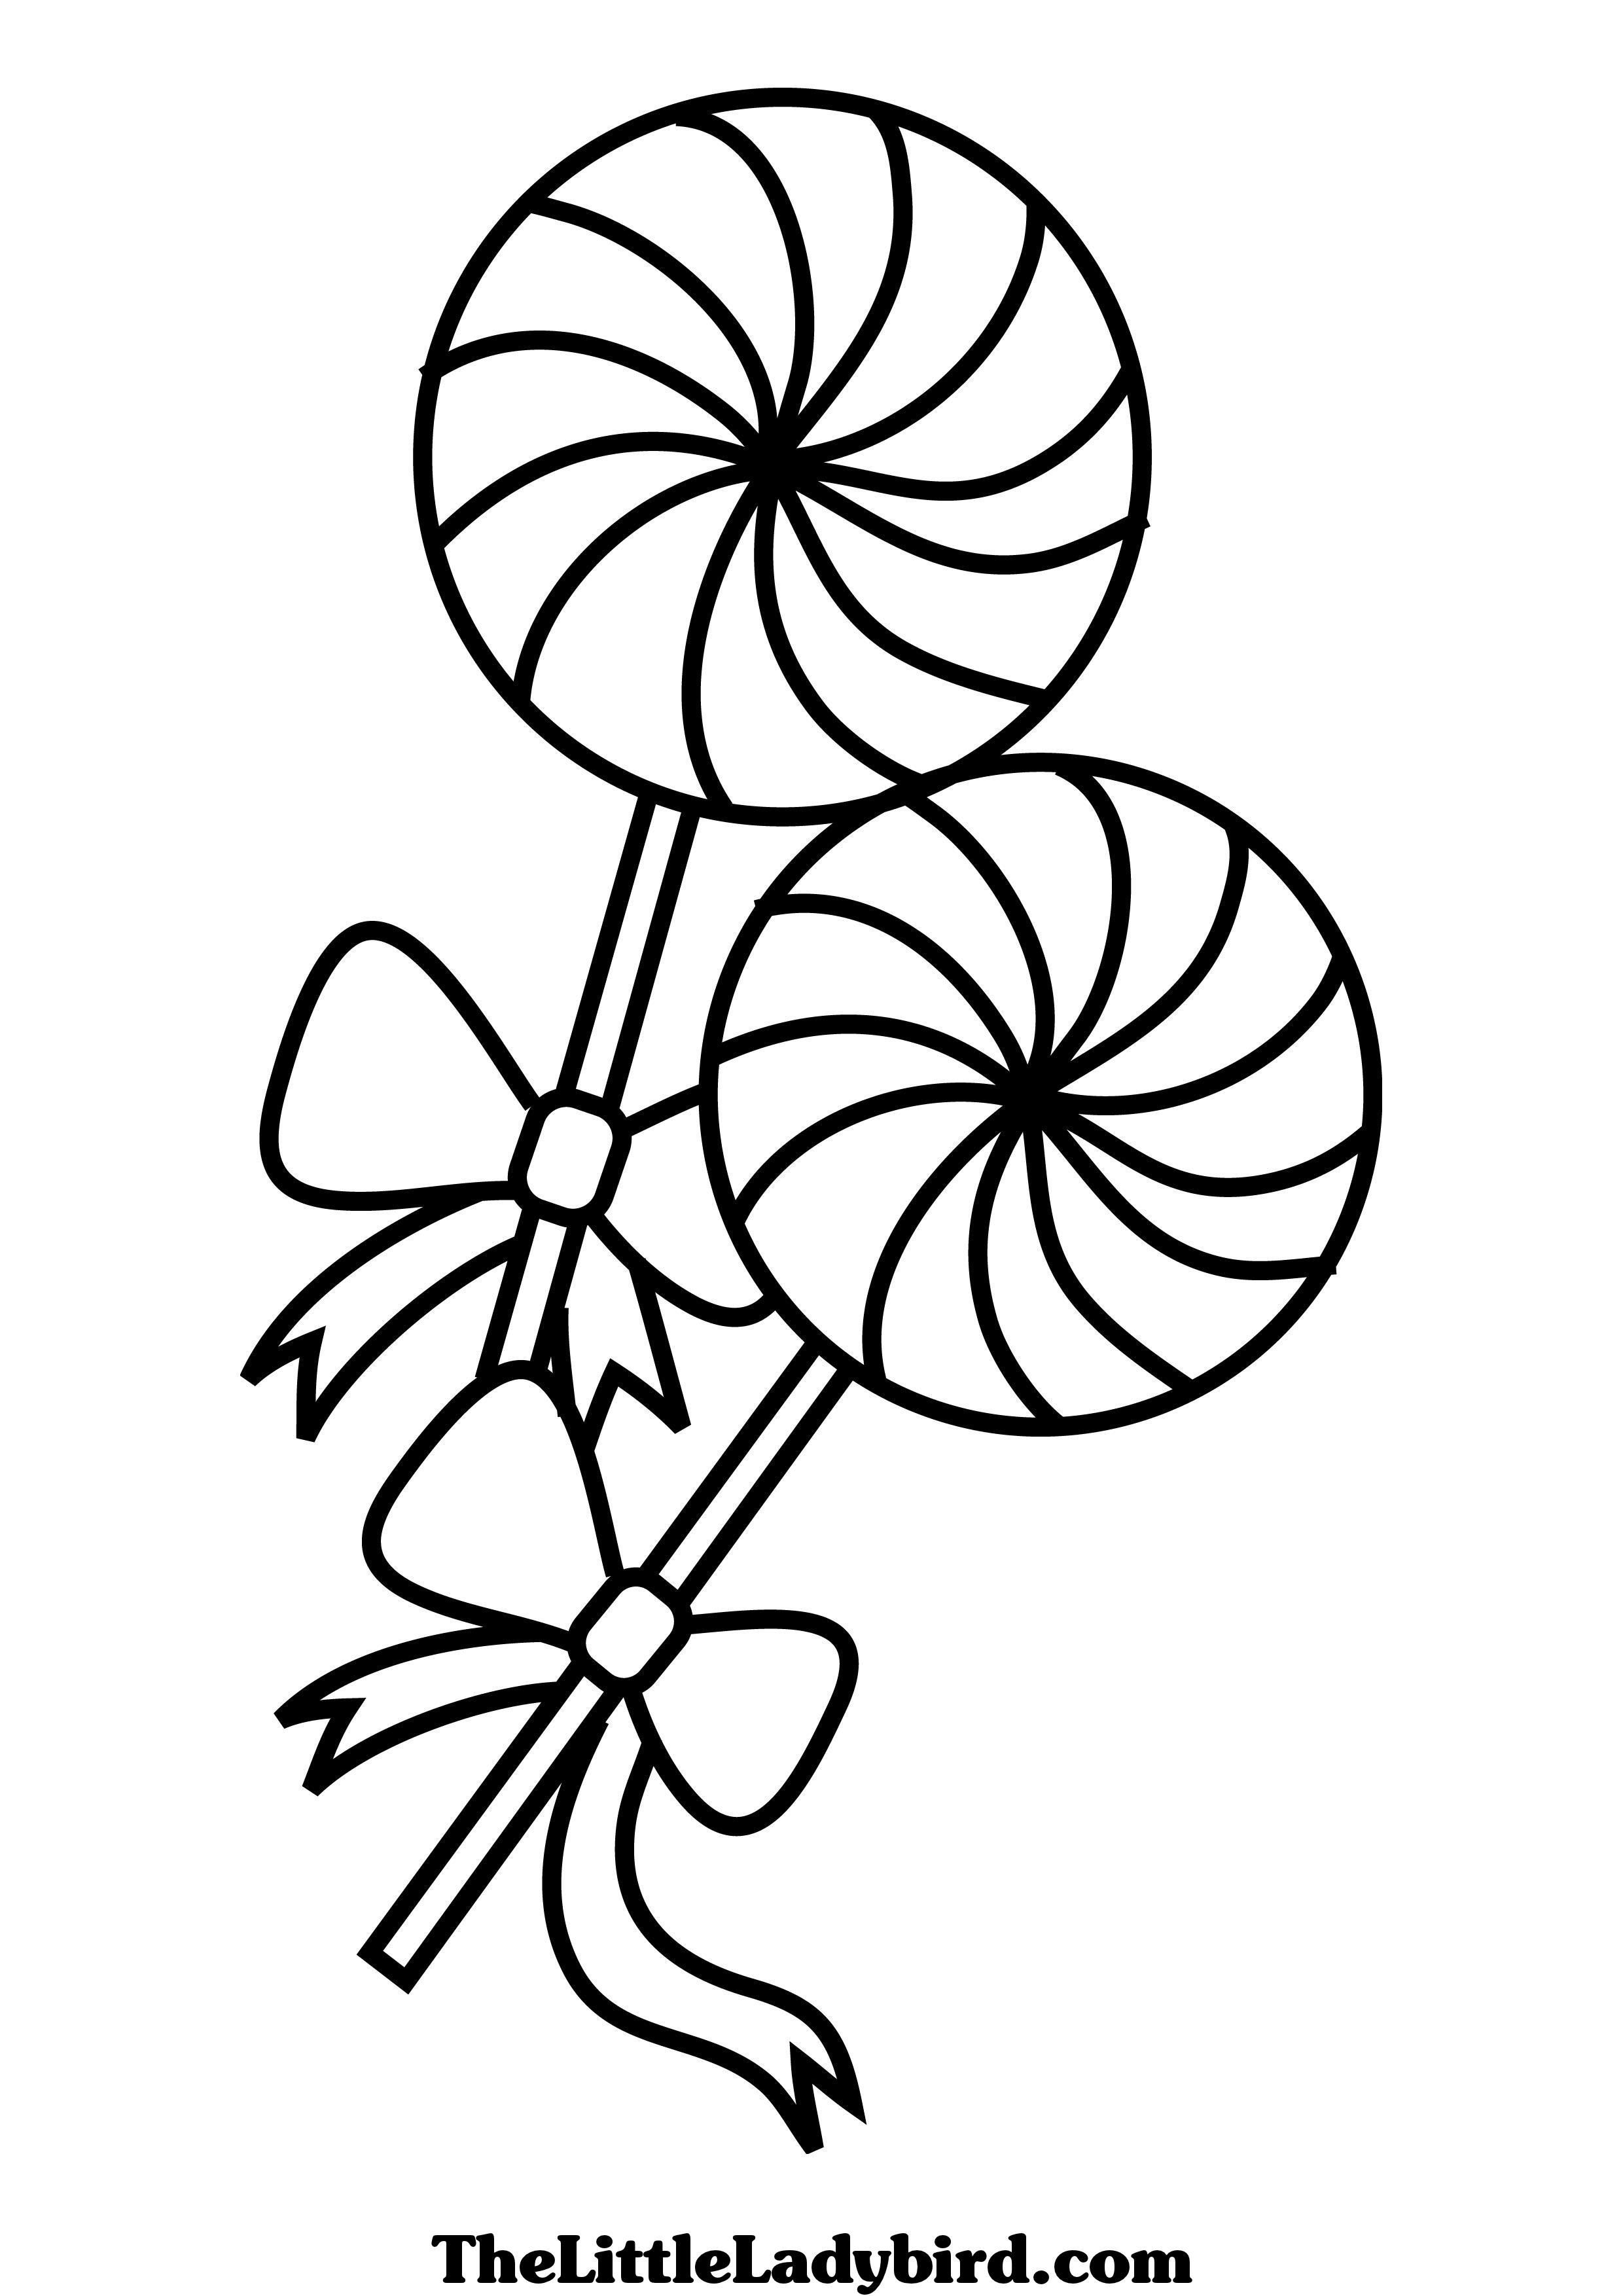 coloring images lollipop the best free lollipop coloring page images download from lollipop coloring images